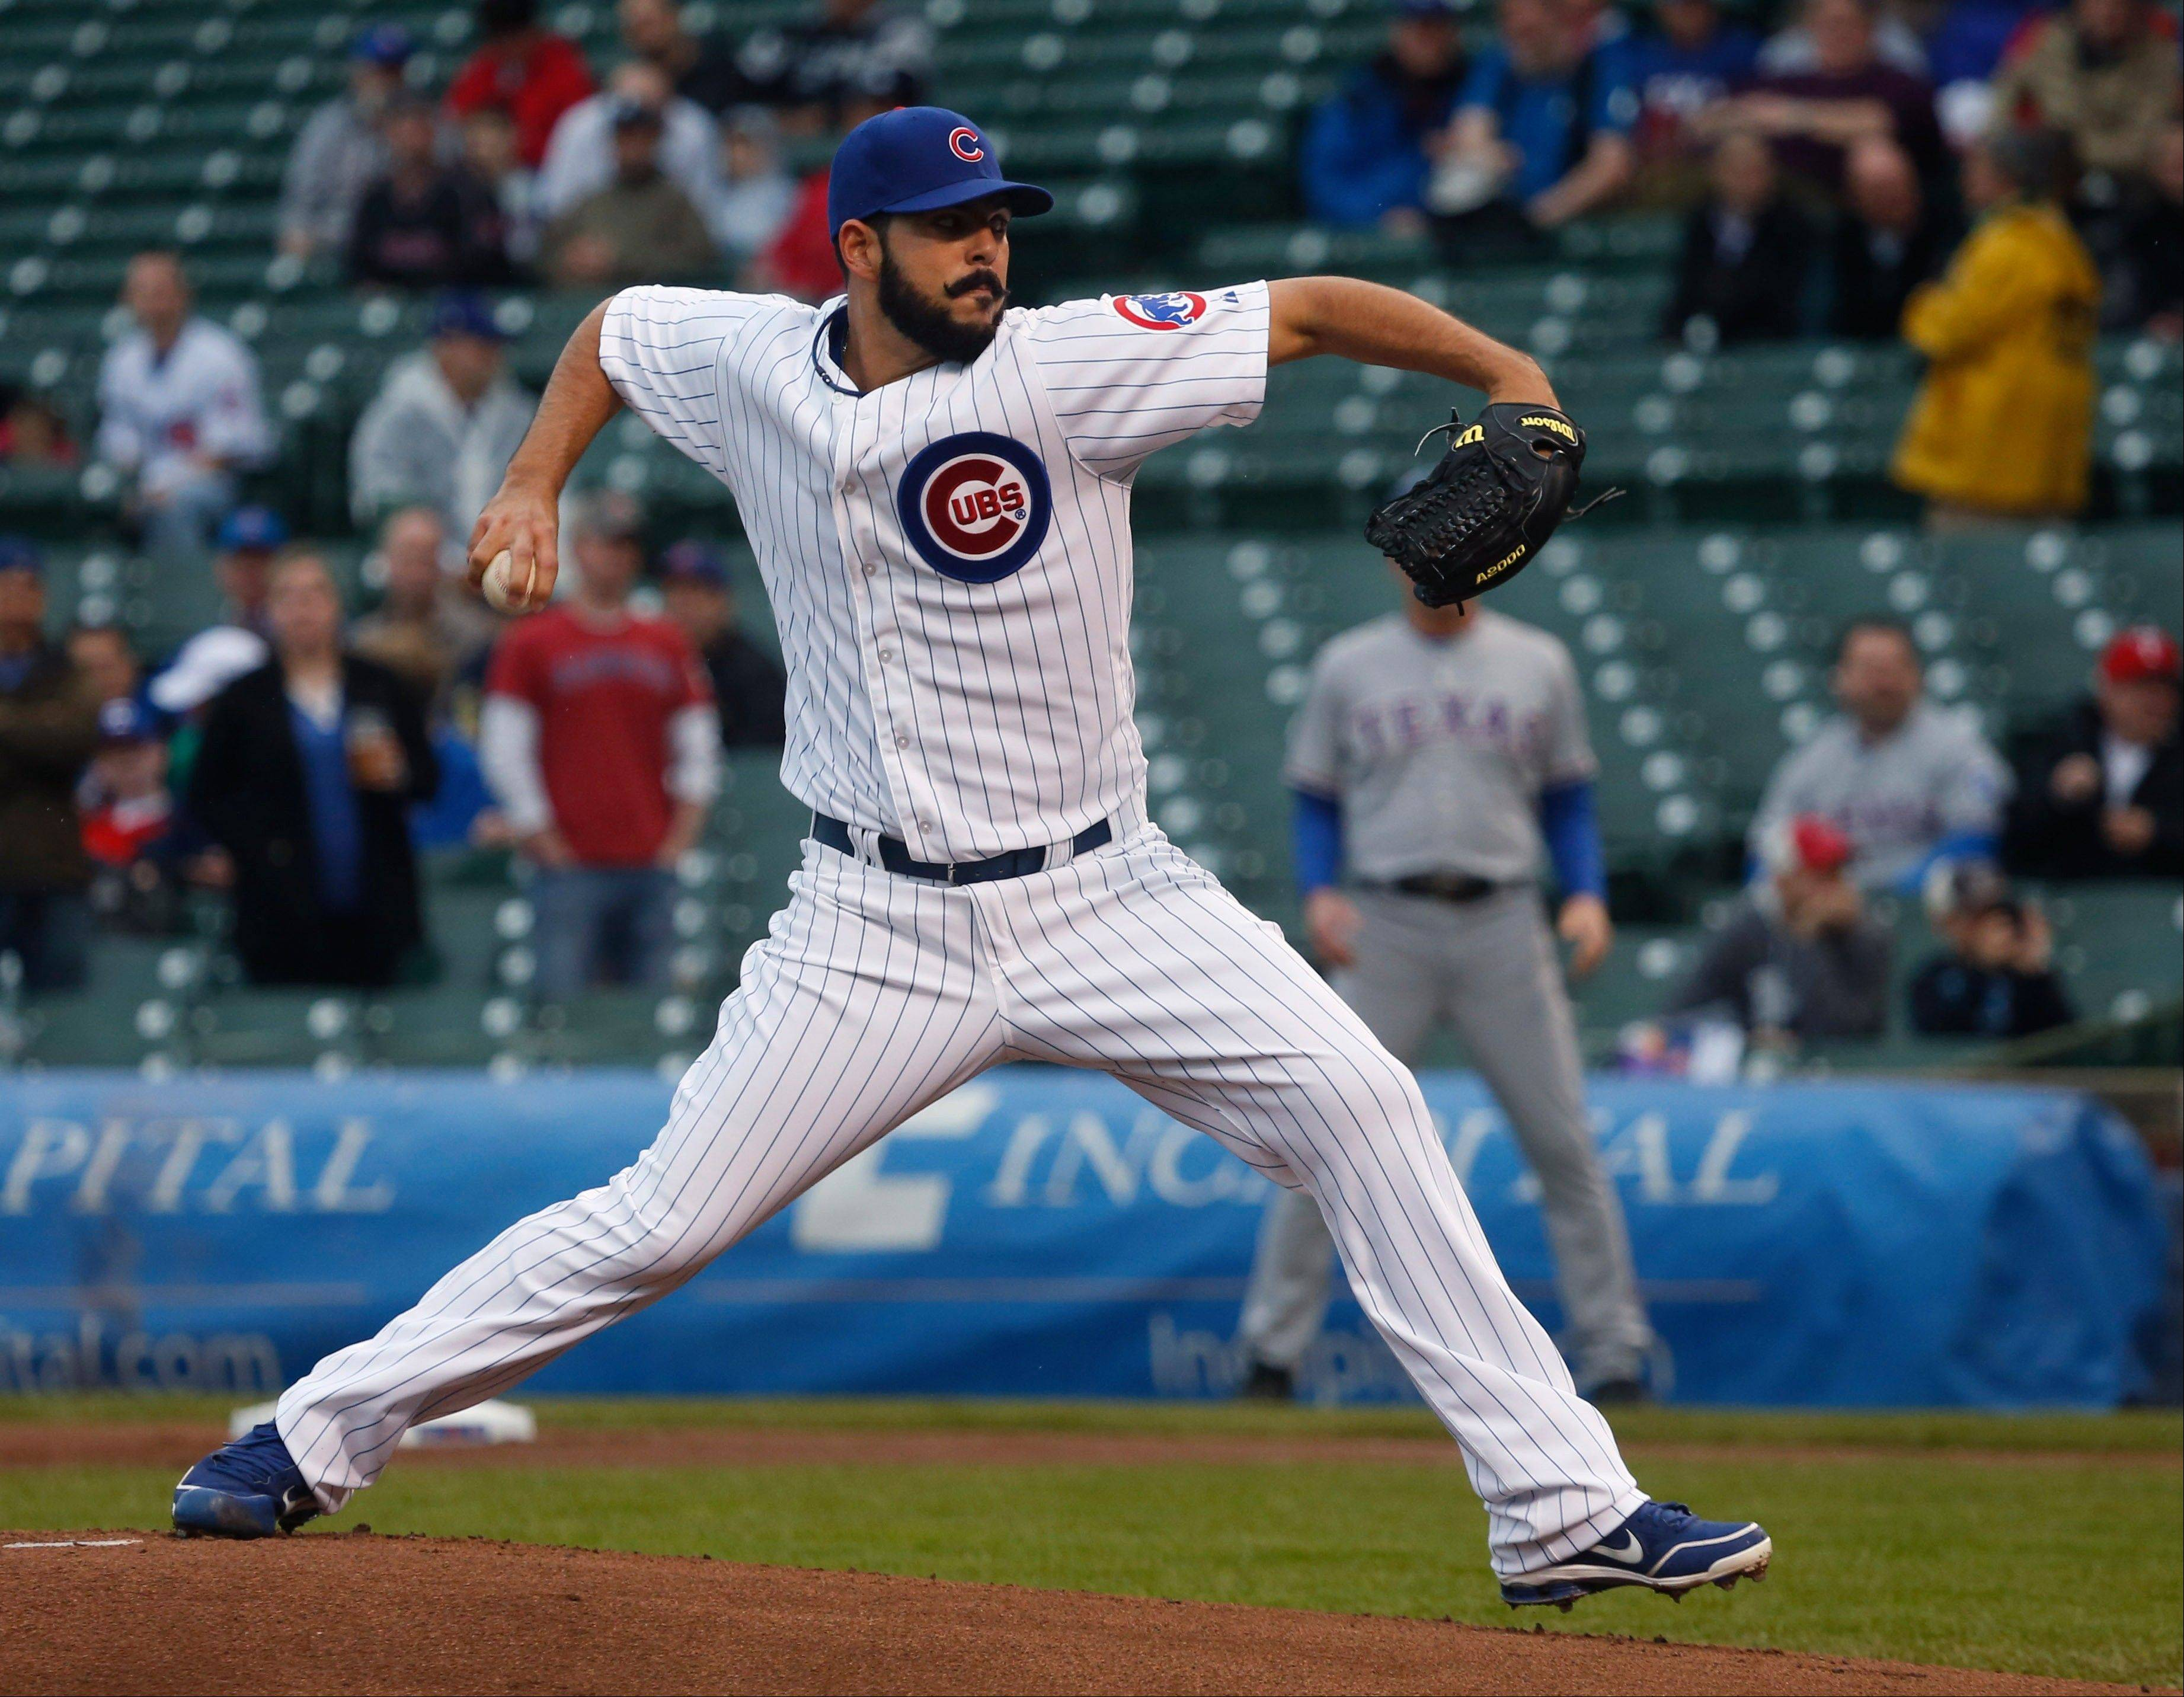 Starter Carlos Villanueva earned his first win as a Cub, lowering his ERA to 1.29.